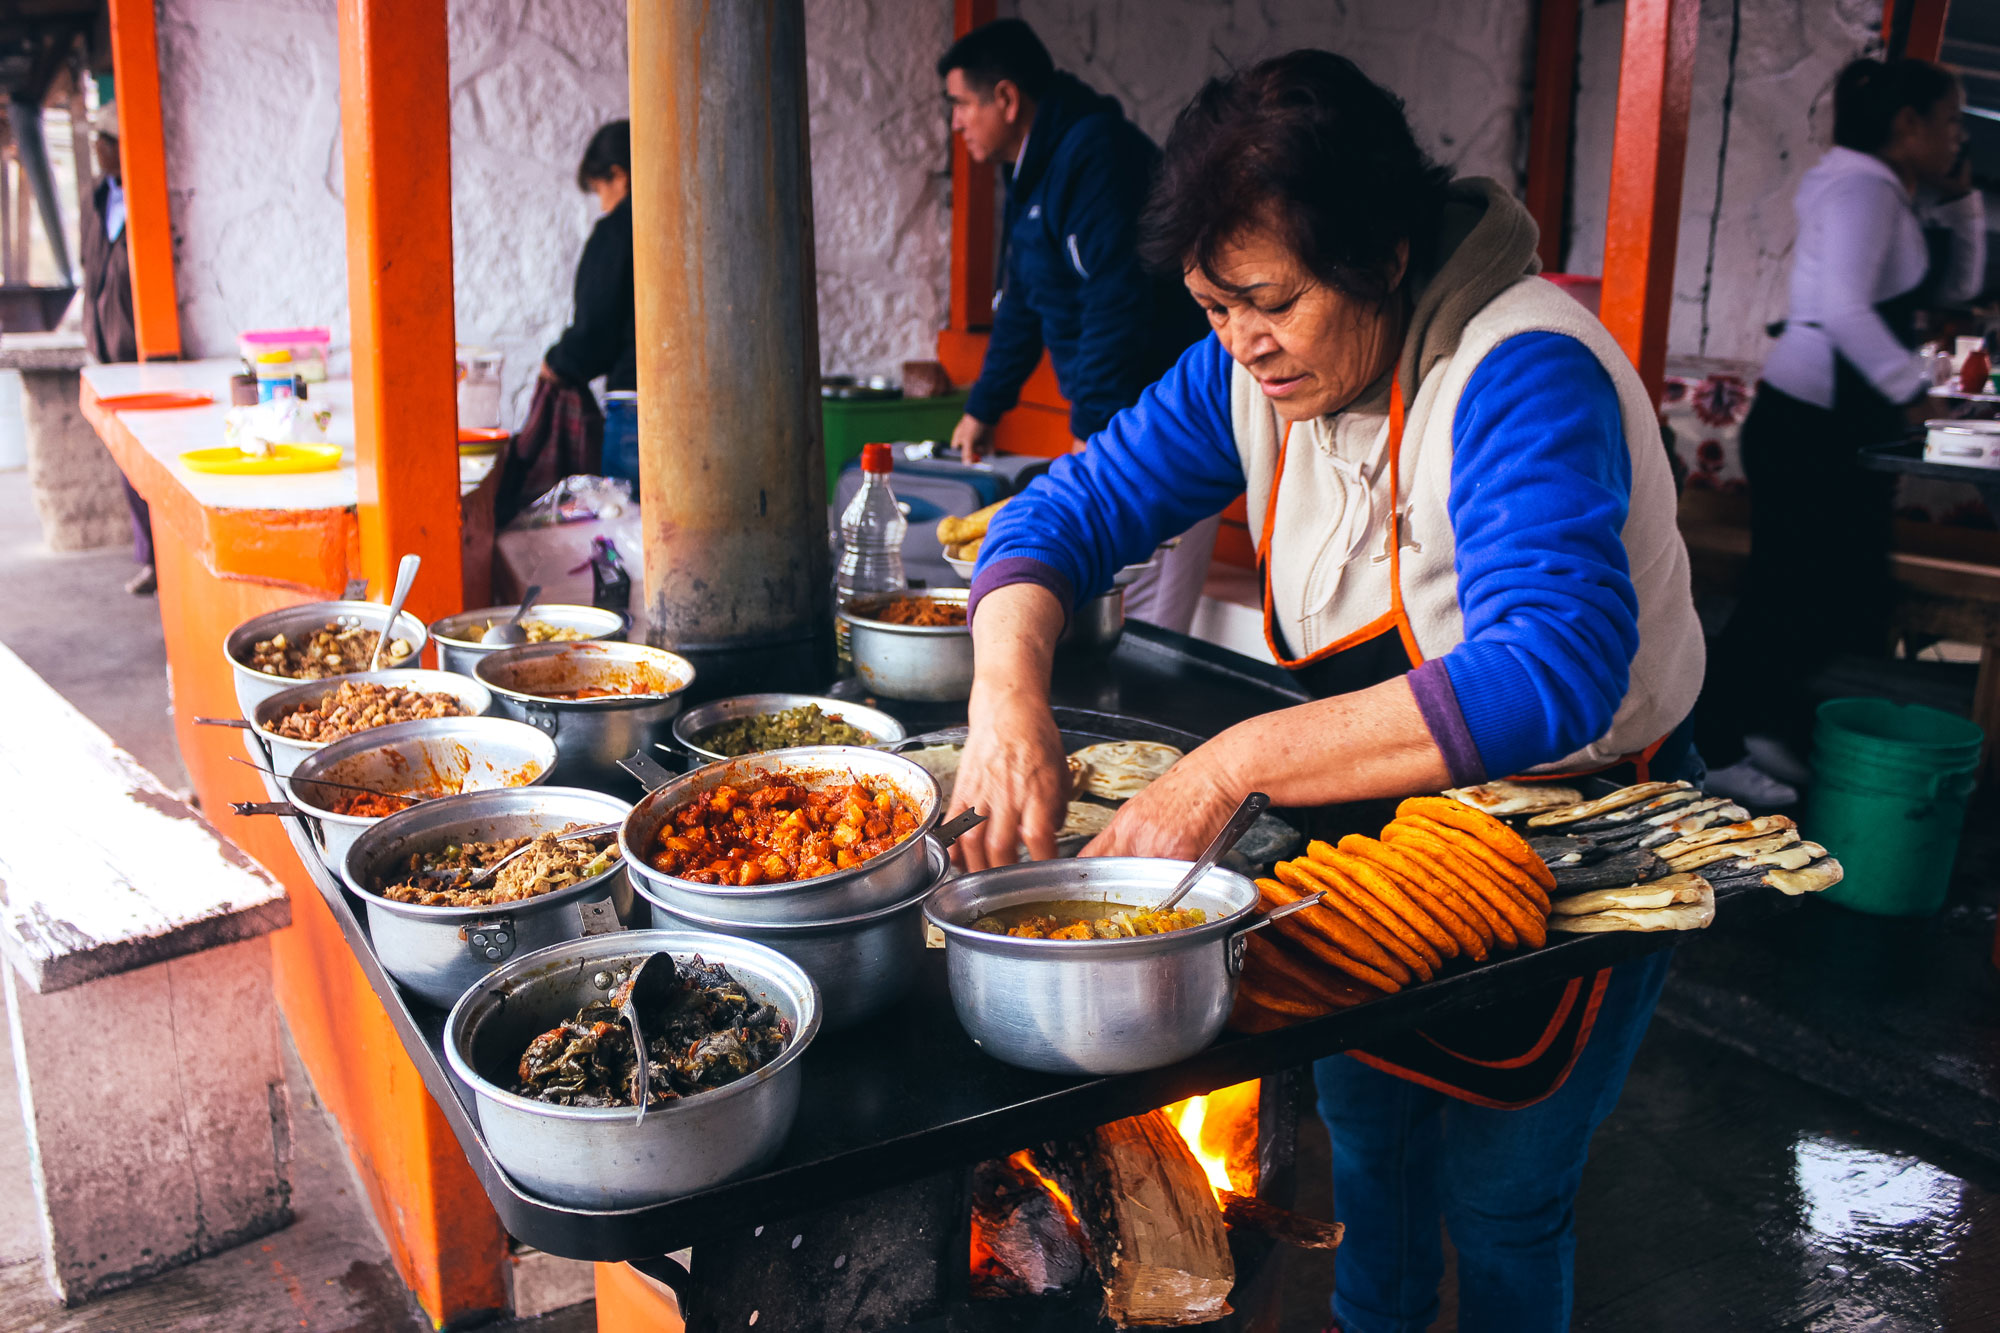 A woman makes gorditas at Divisadero Station, a stop on the way to Urique laying at the base of the Copper Canyons.